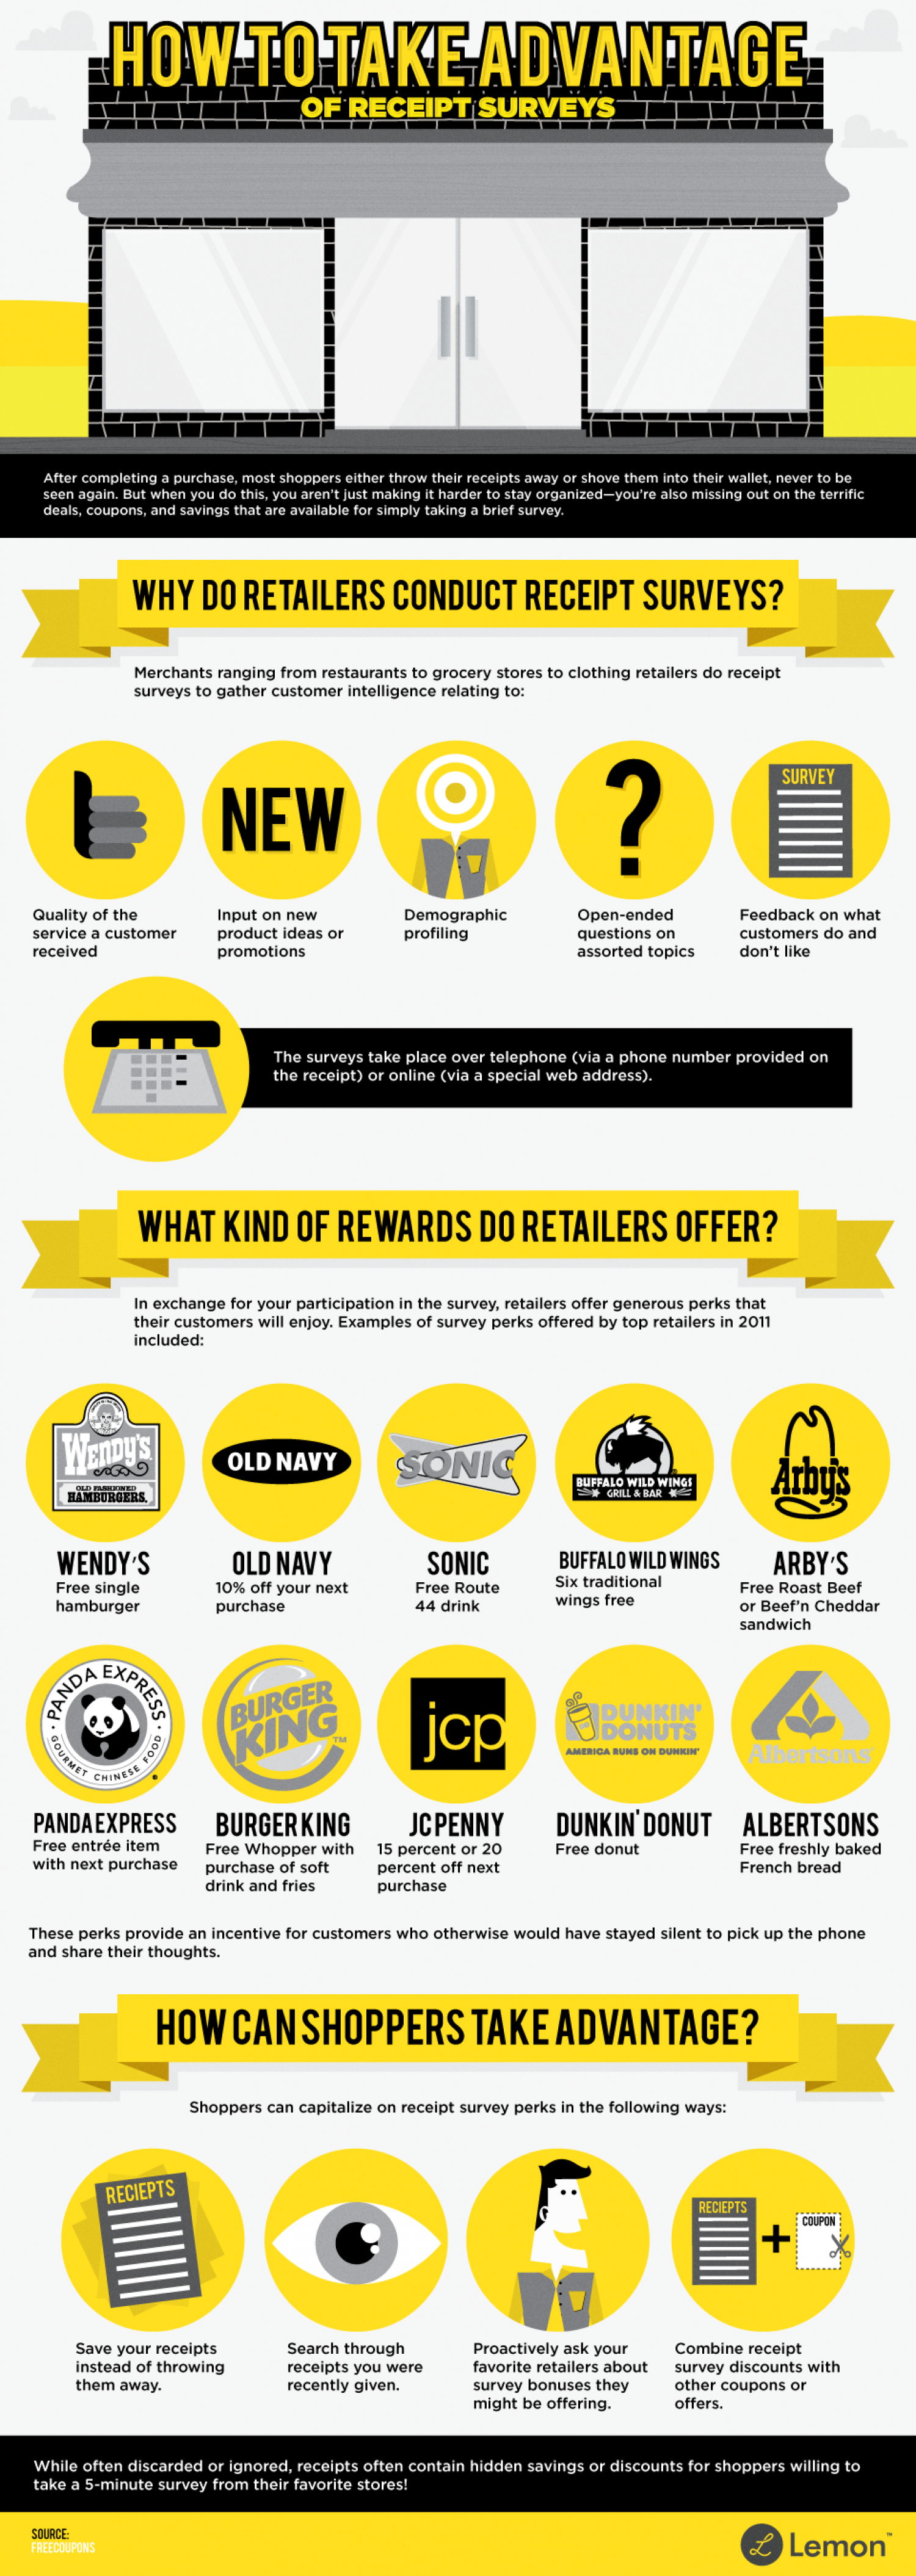 How to Take Advantage of Receipt Surveys Infographic